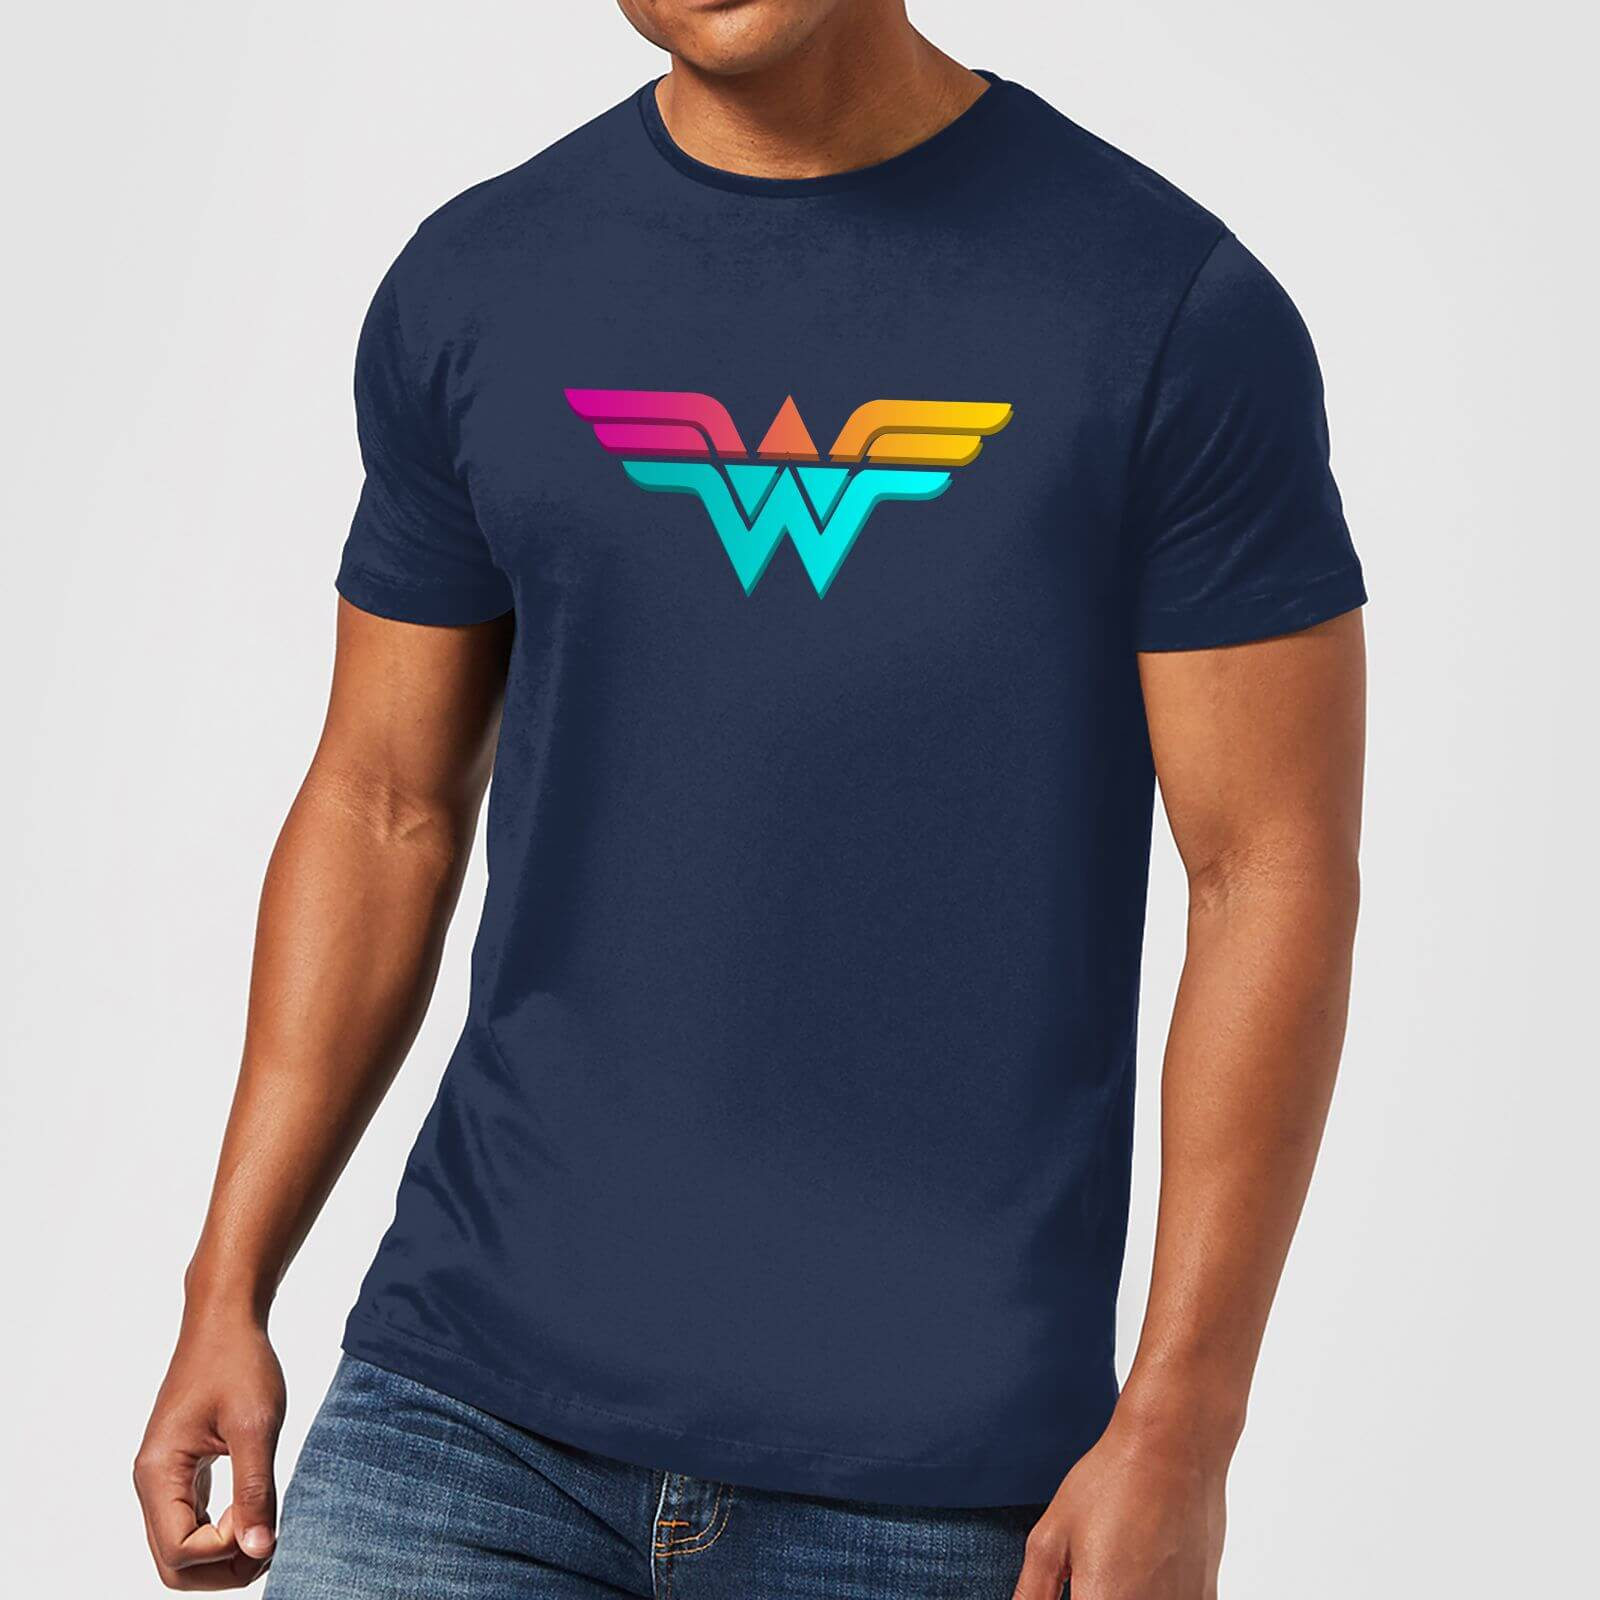 95f60ab0c Justice League Neon Wonder Woman Men's T-Shirt - Navy Clothing | Zavvi